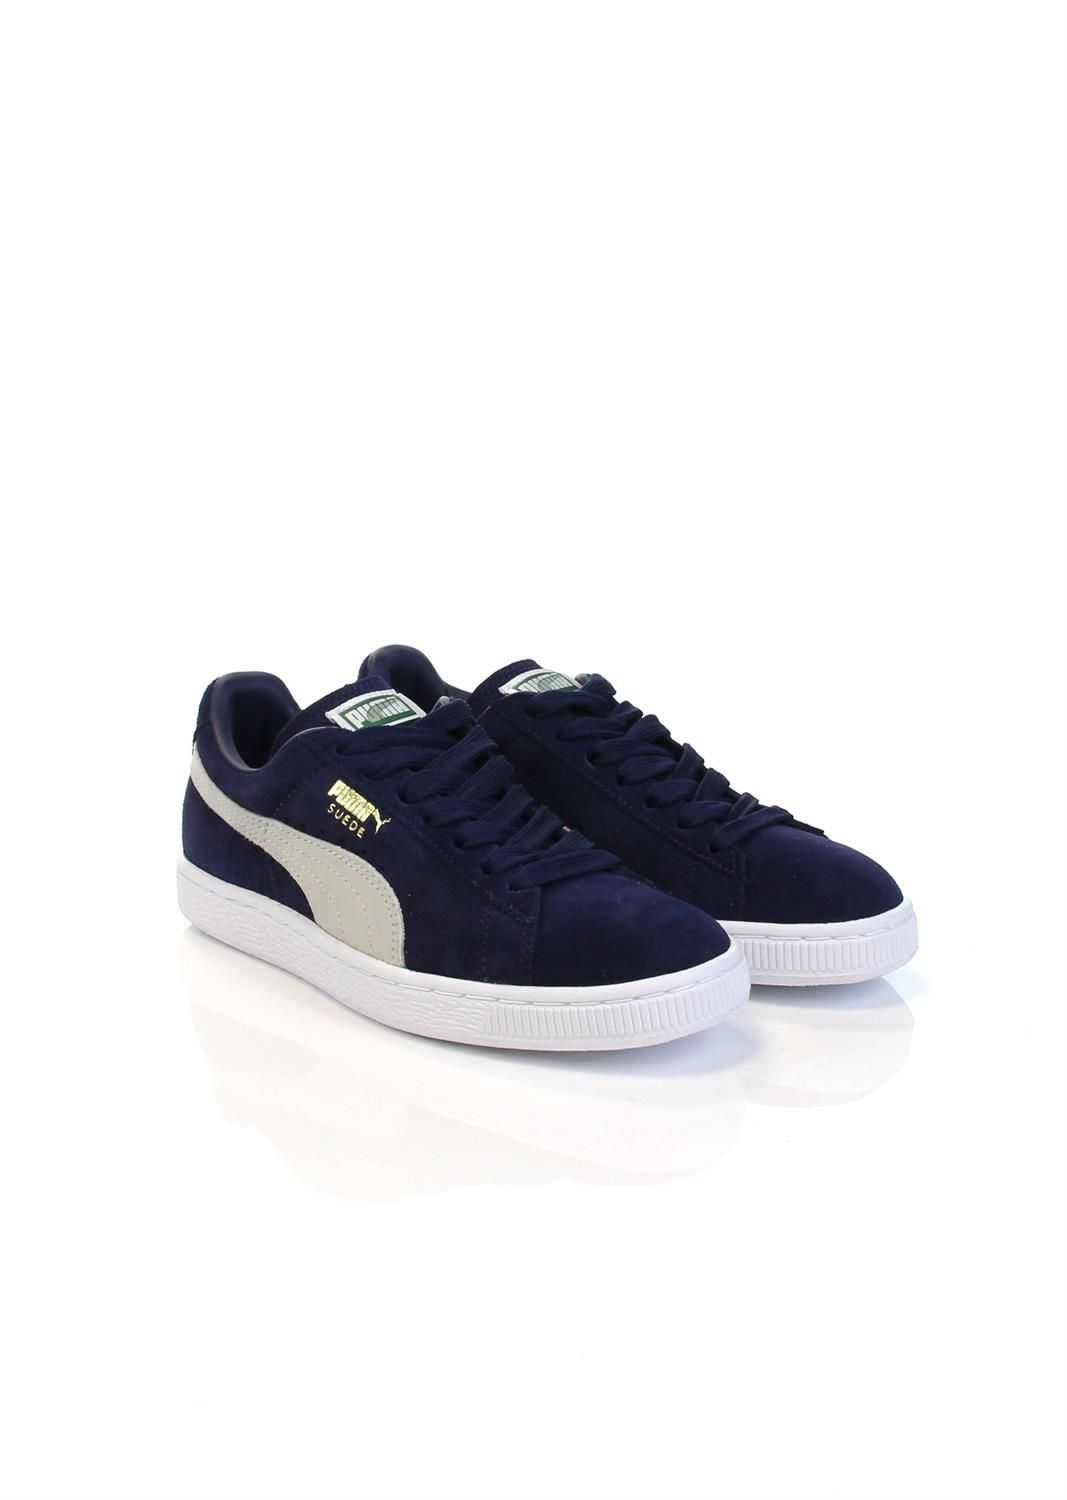 Puma 356568-51 - Sneakers - Dames | Herensneakers, Schoenen ...